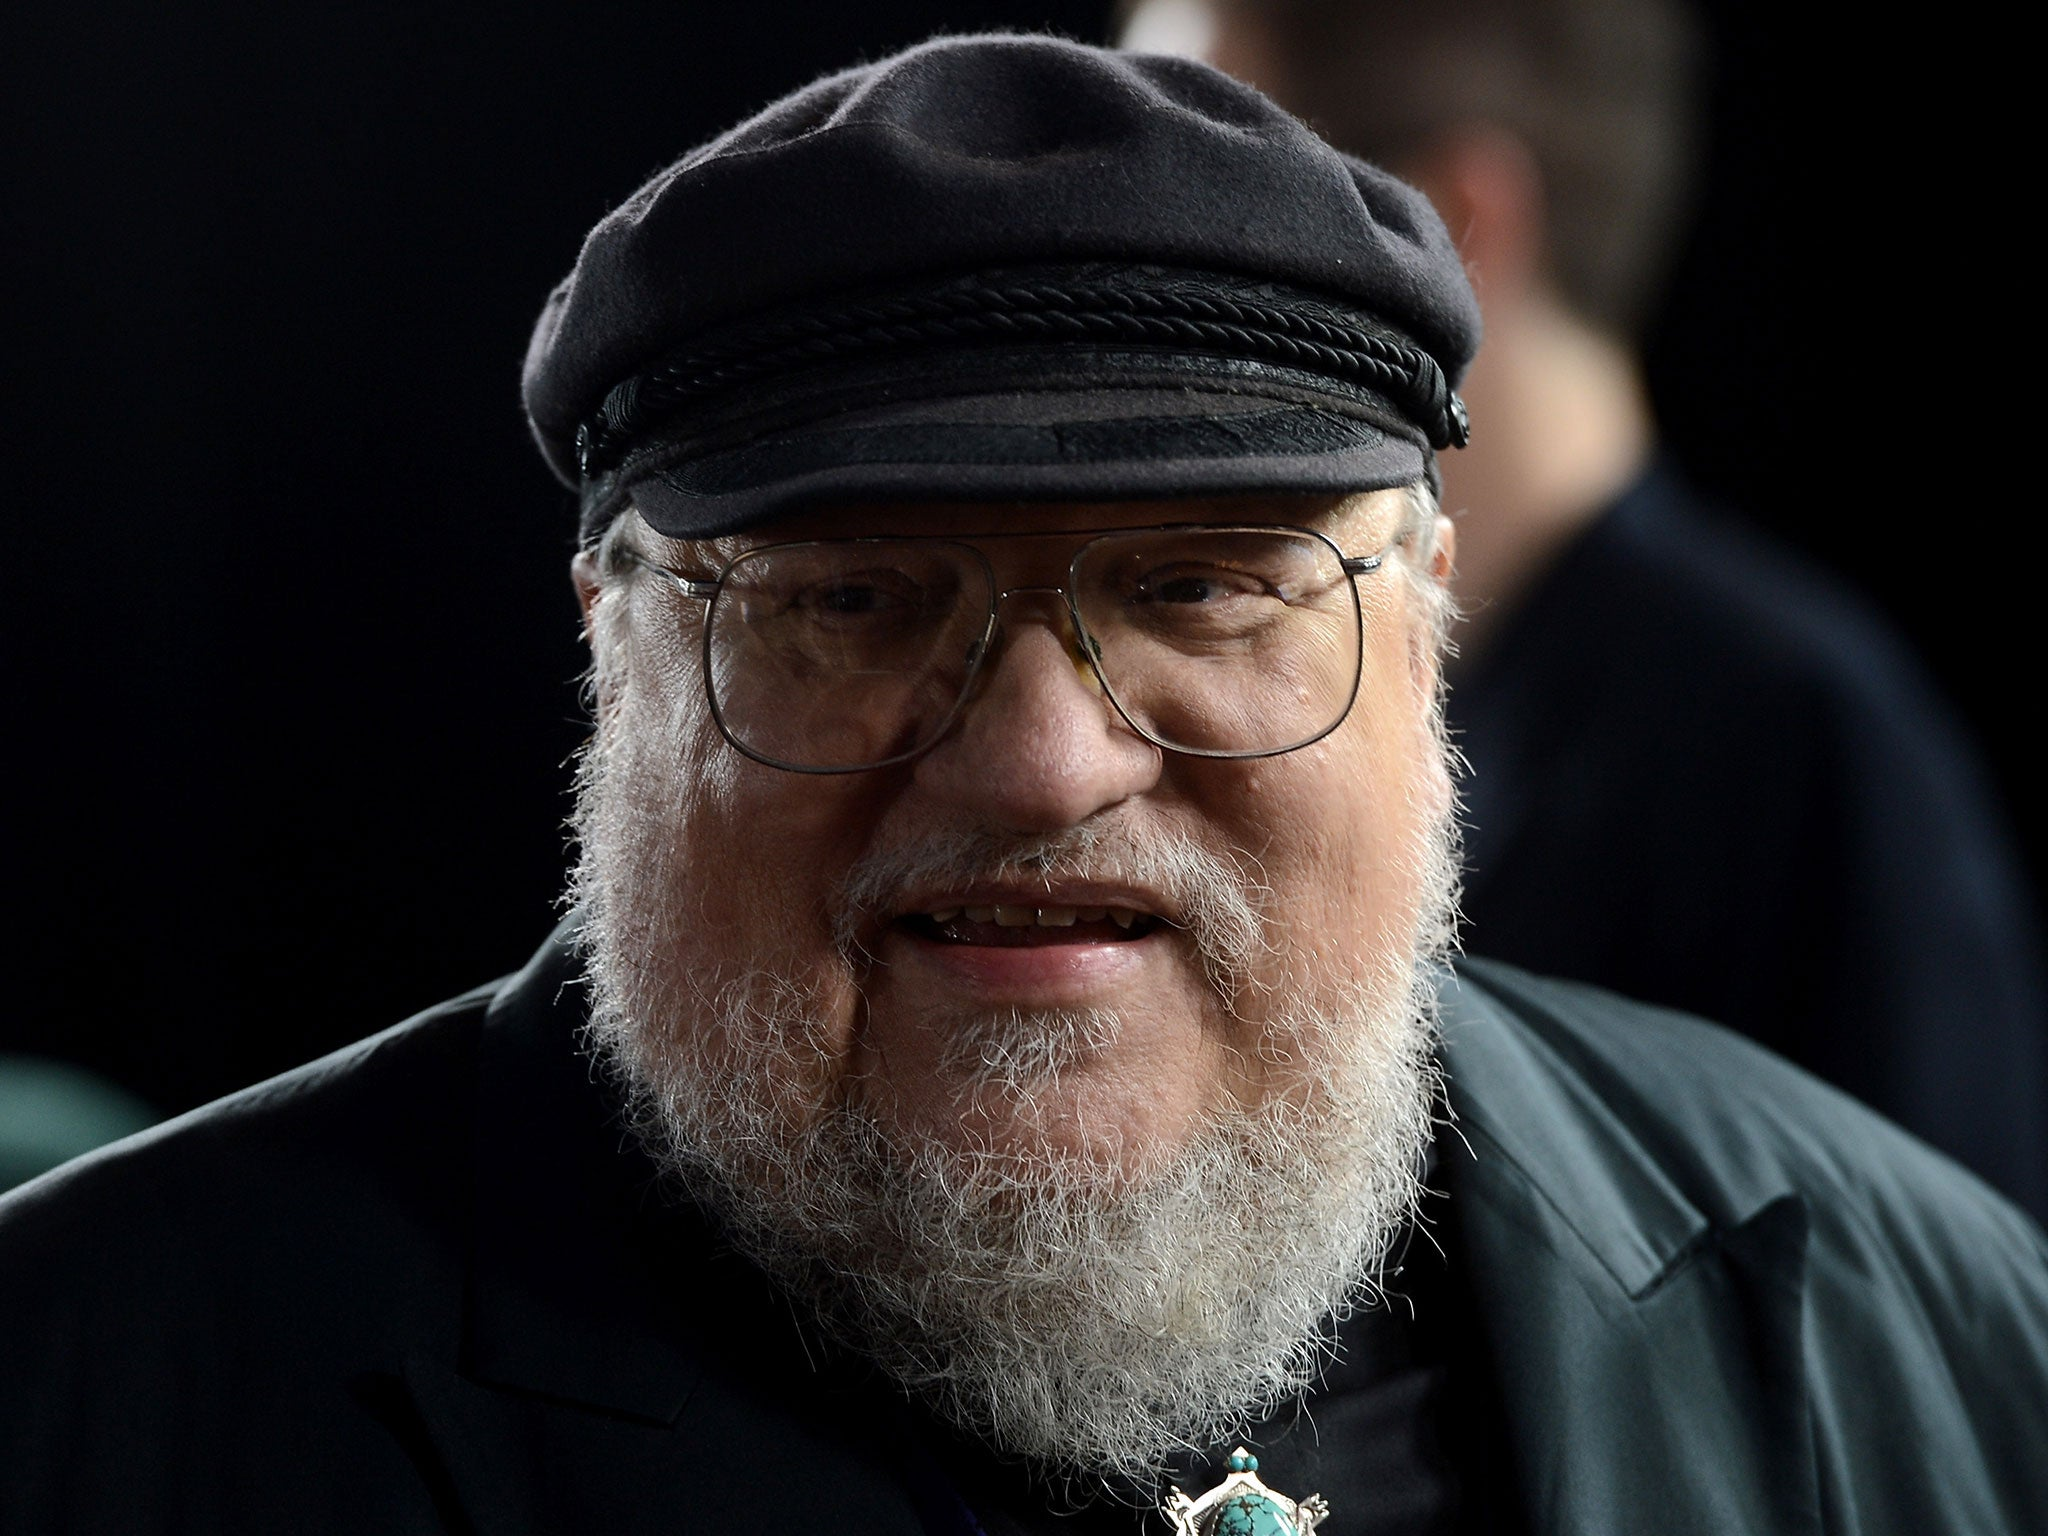 Photo of RR Martin from http://www.independent.co.uk/arts-entertainment/books/news/game-of-thrones-george-rr-martin-explains-why-he-kills-off-characters-a7035396.html